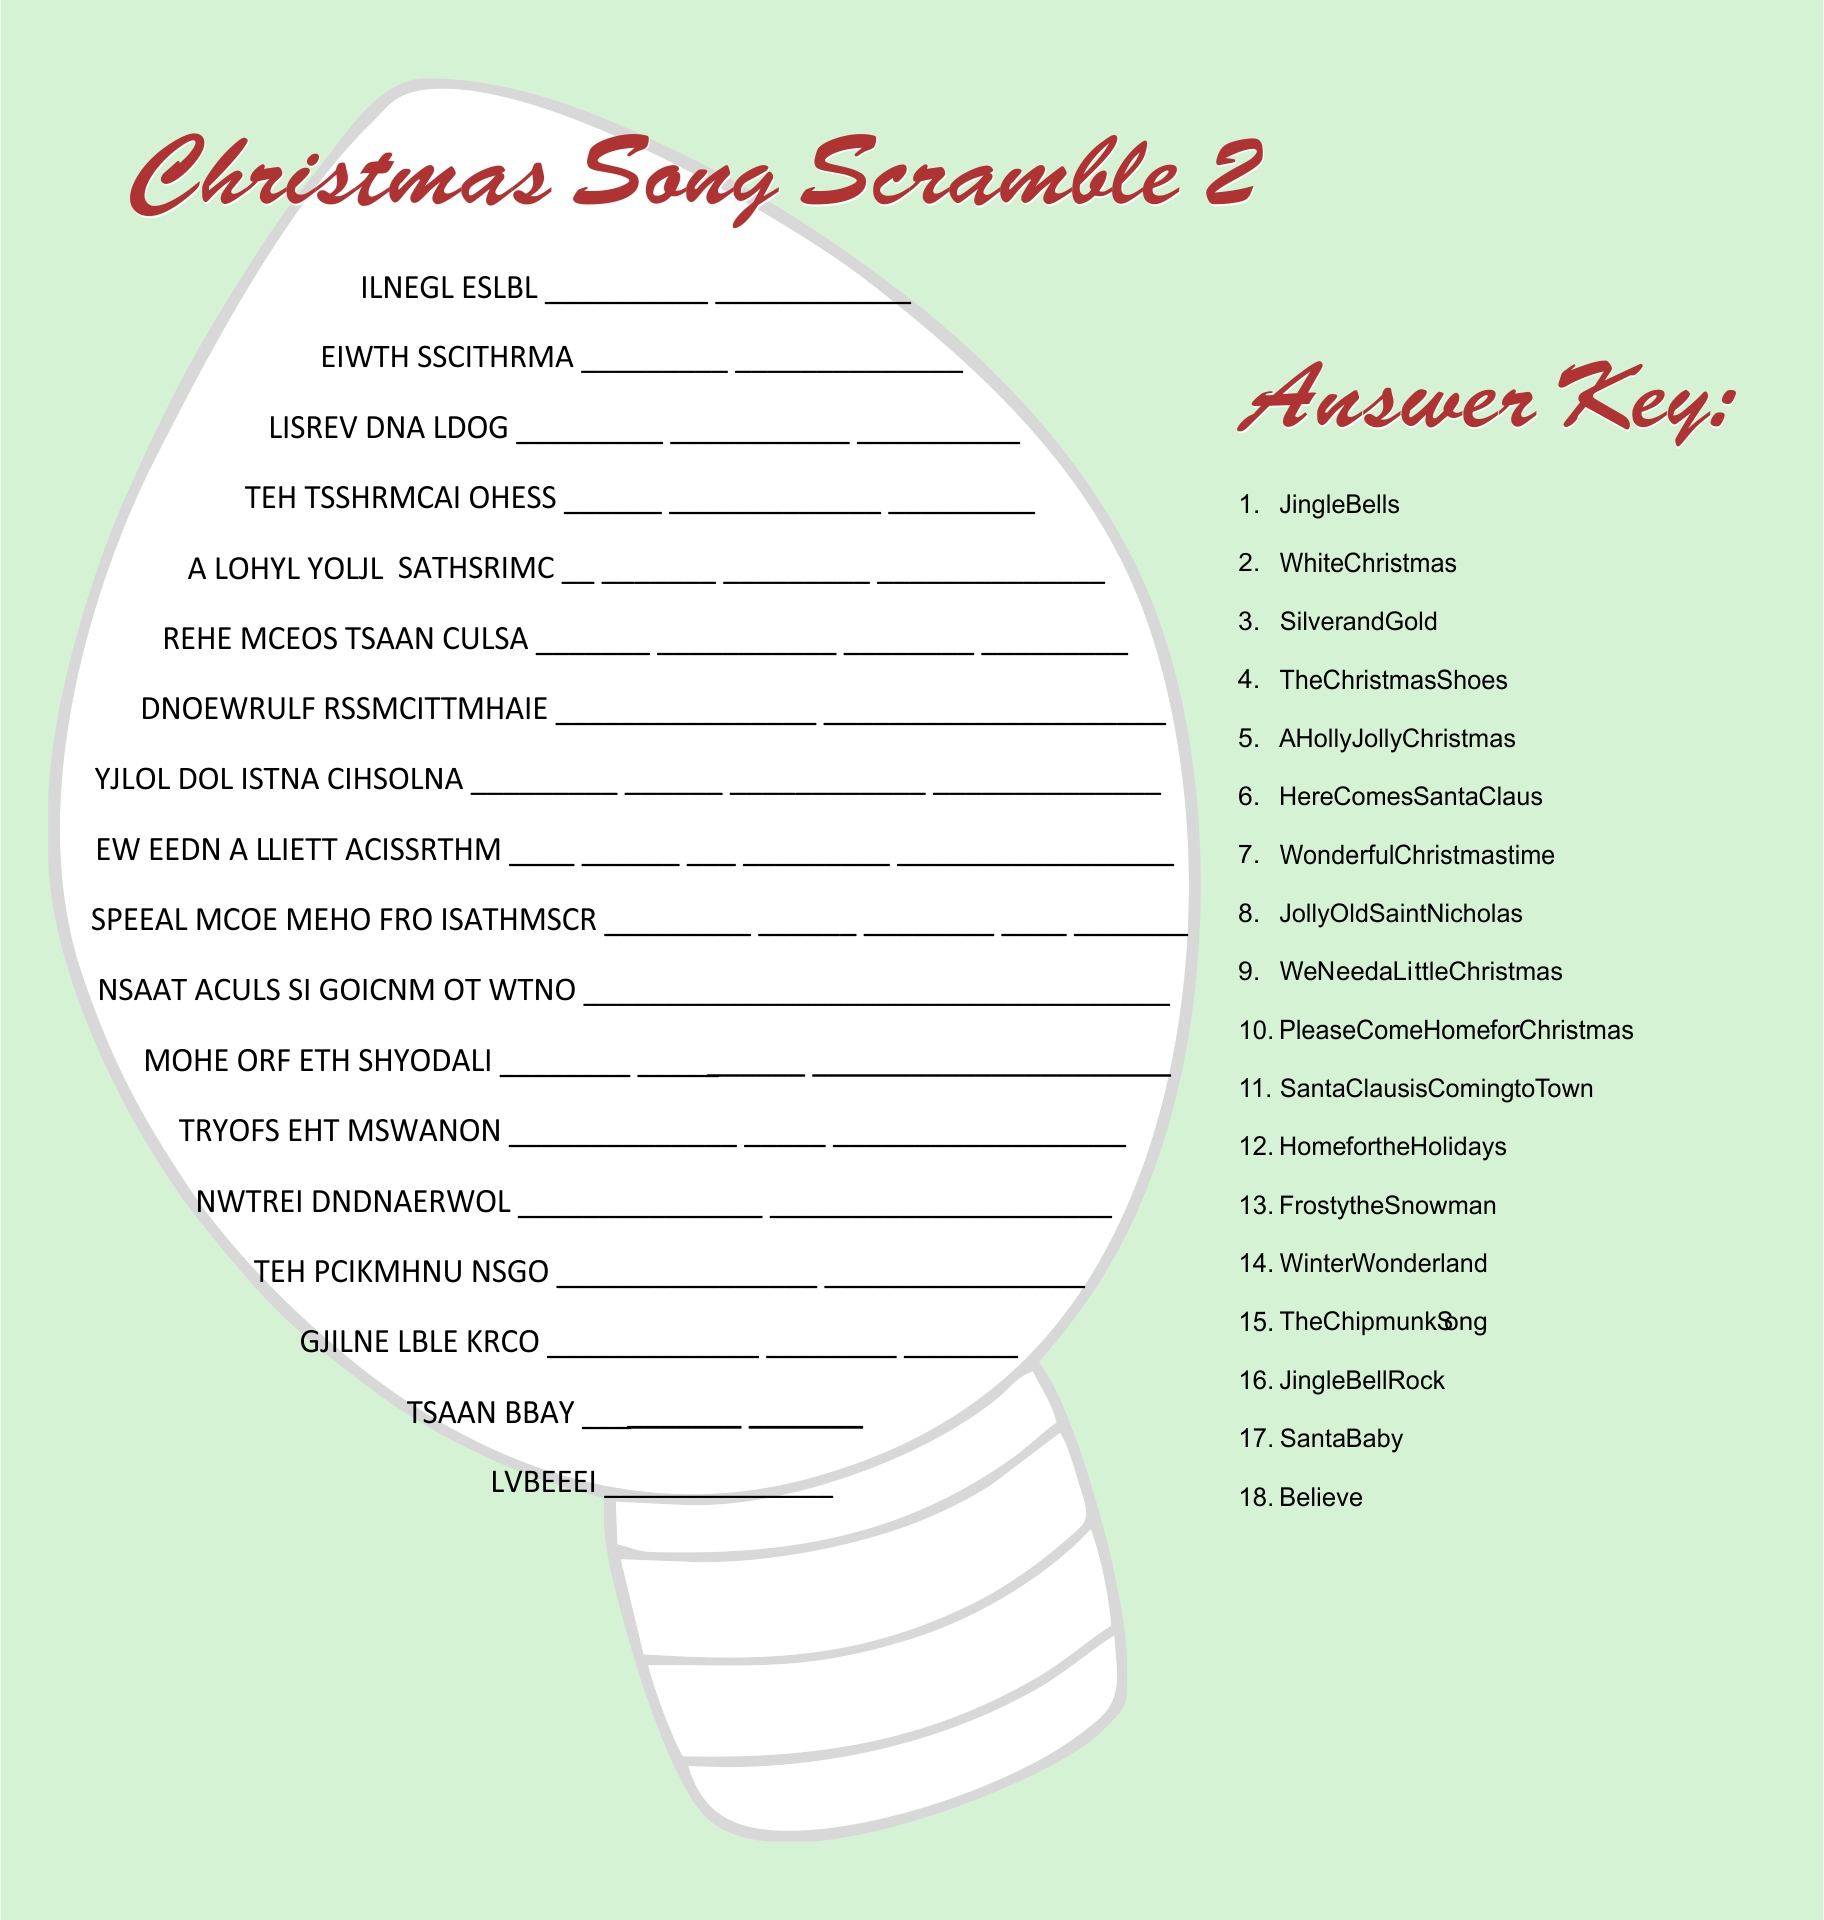 6 Images of Printable Christmas Song Scramble